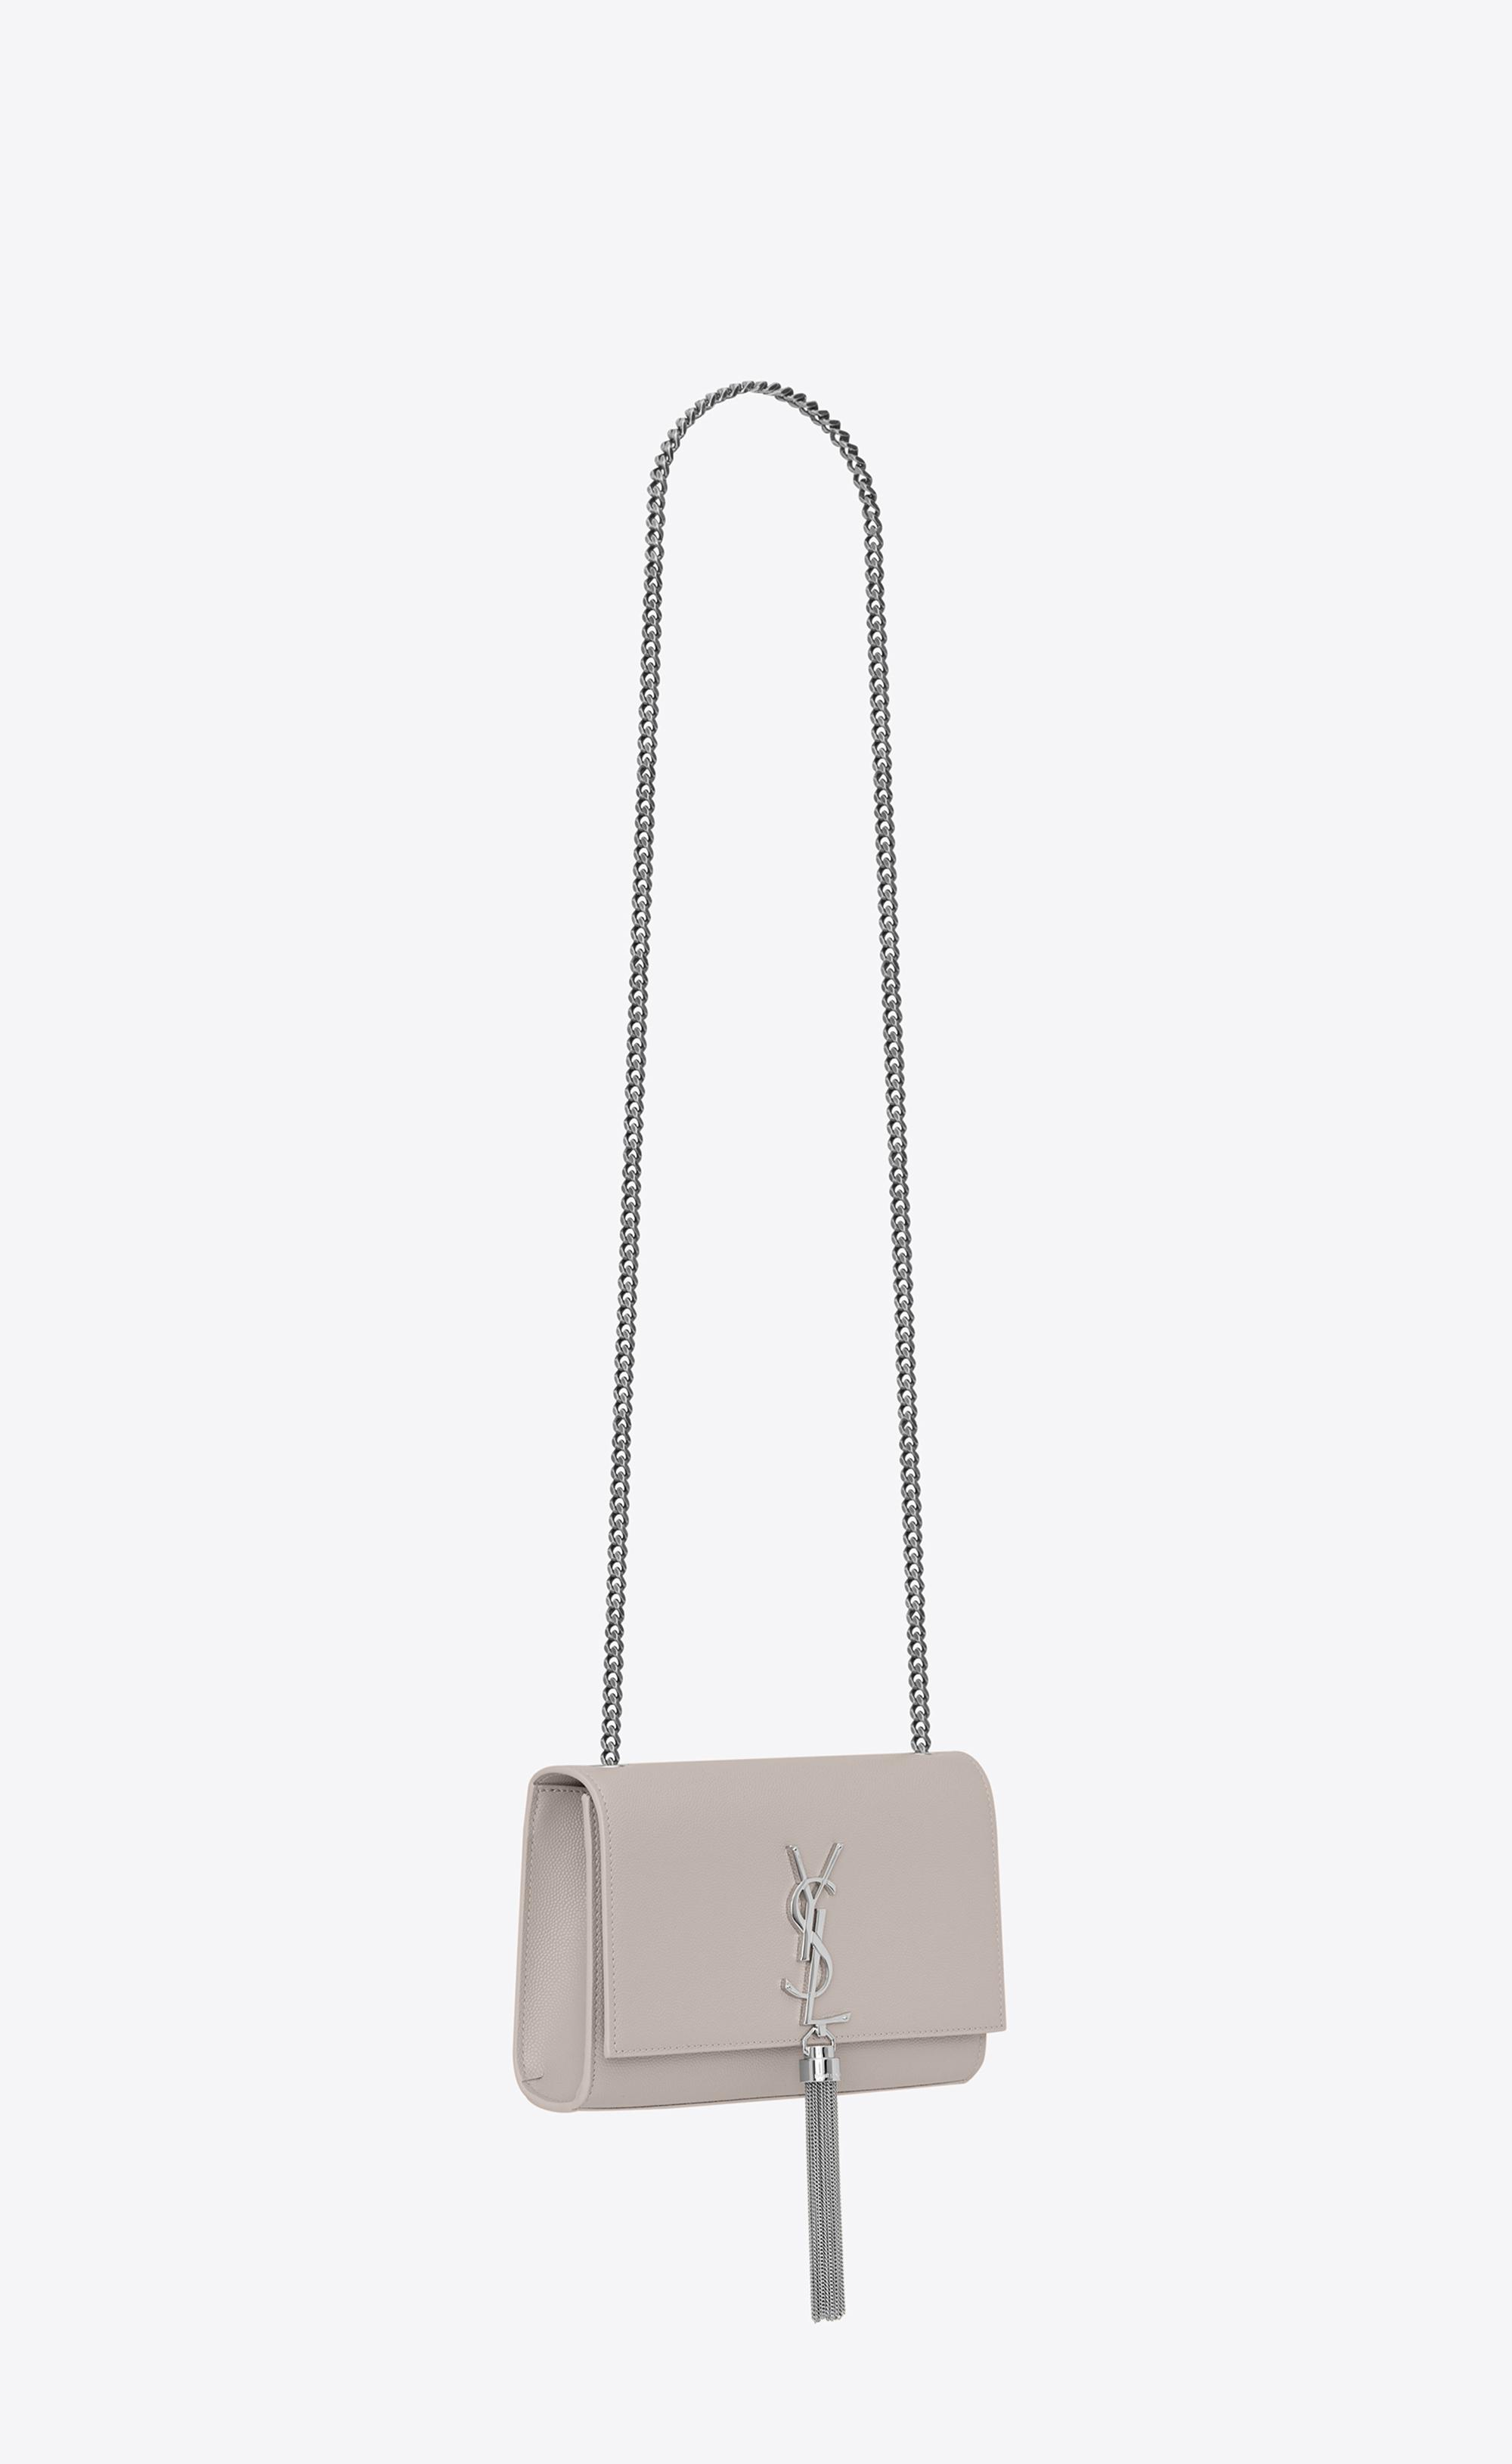 ff1b9e8ae10 Saint Laurent Kate Medium With Tassel In Grain De Poudre Embossed Leather  in White - Save 9% - Lyst